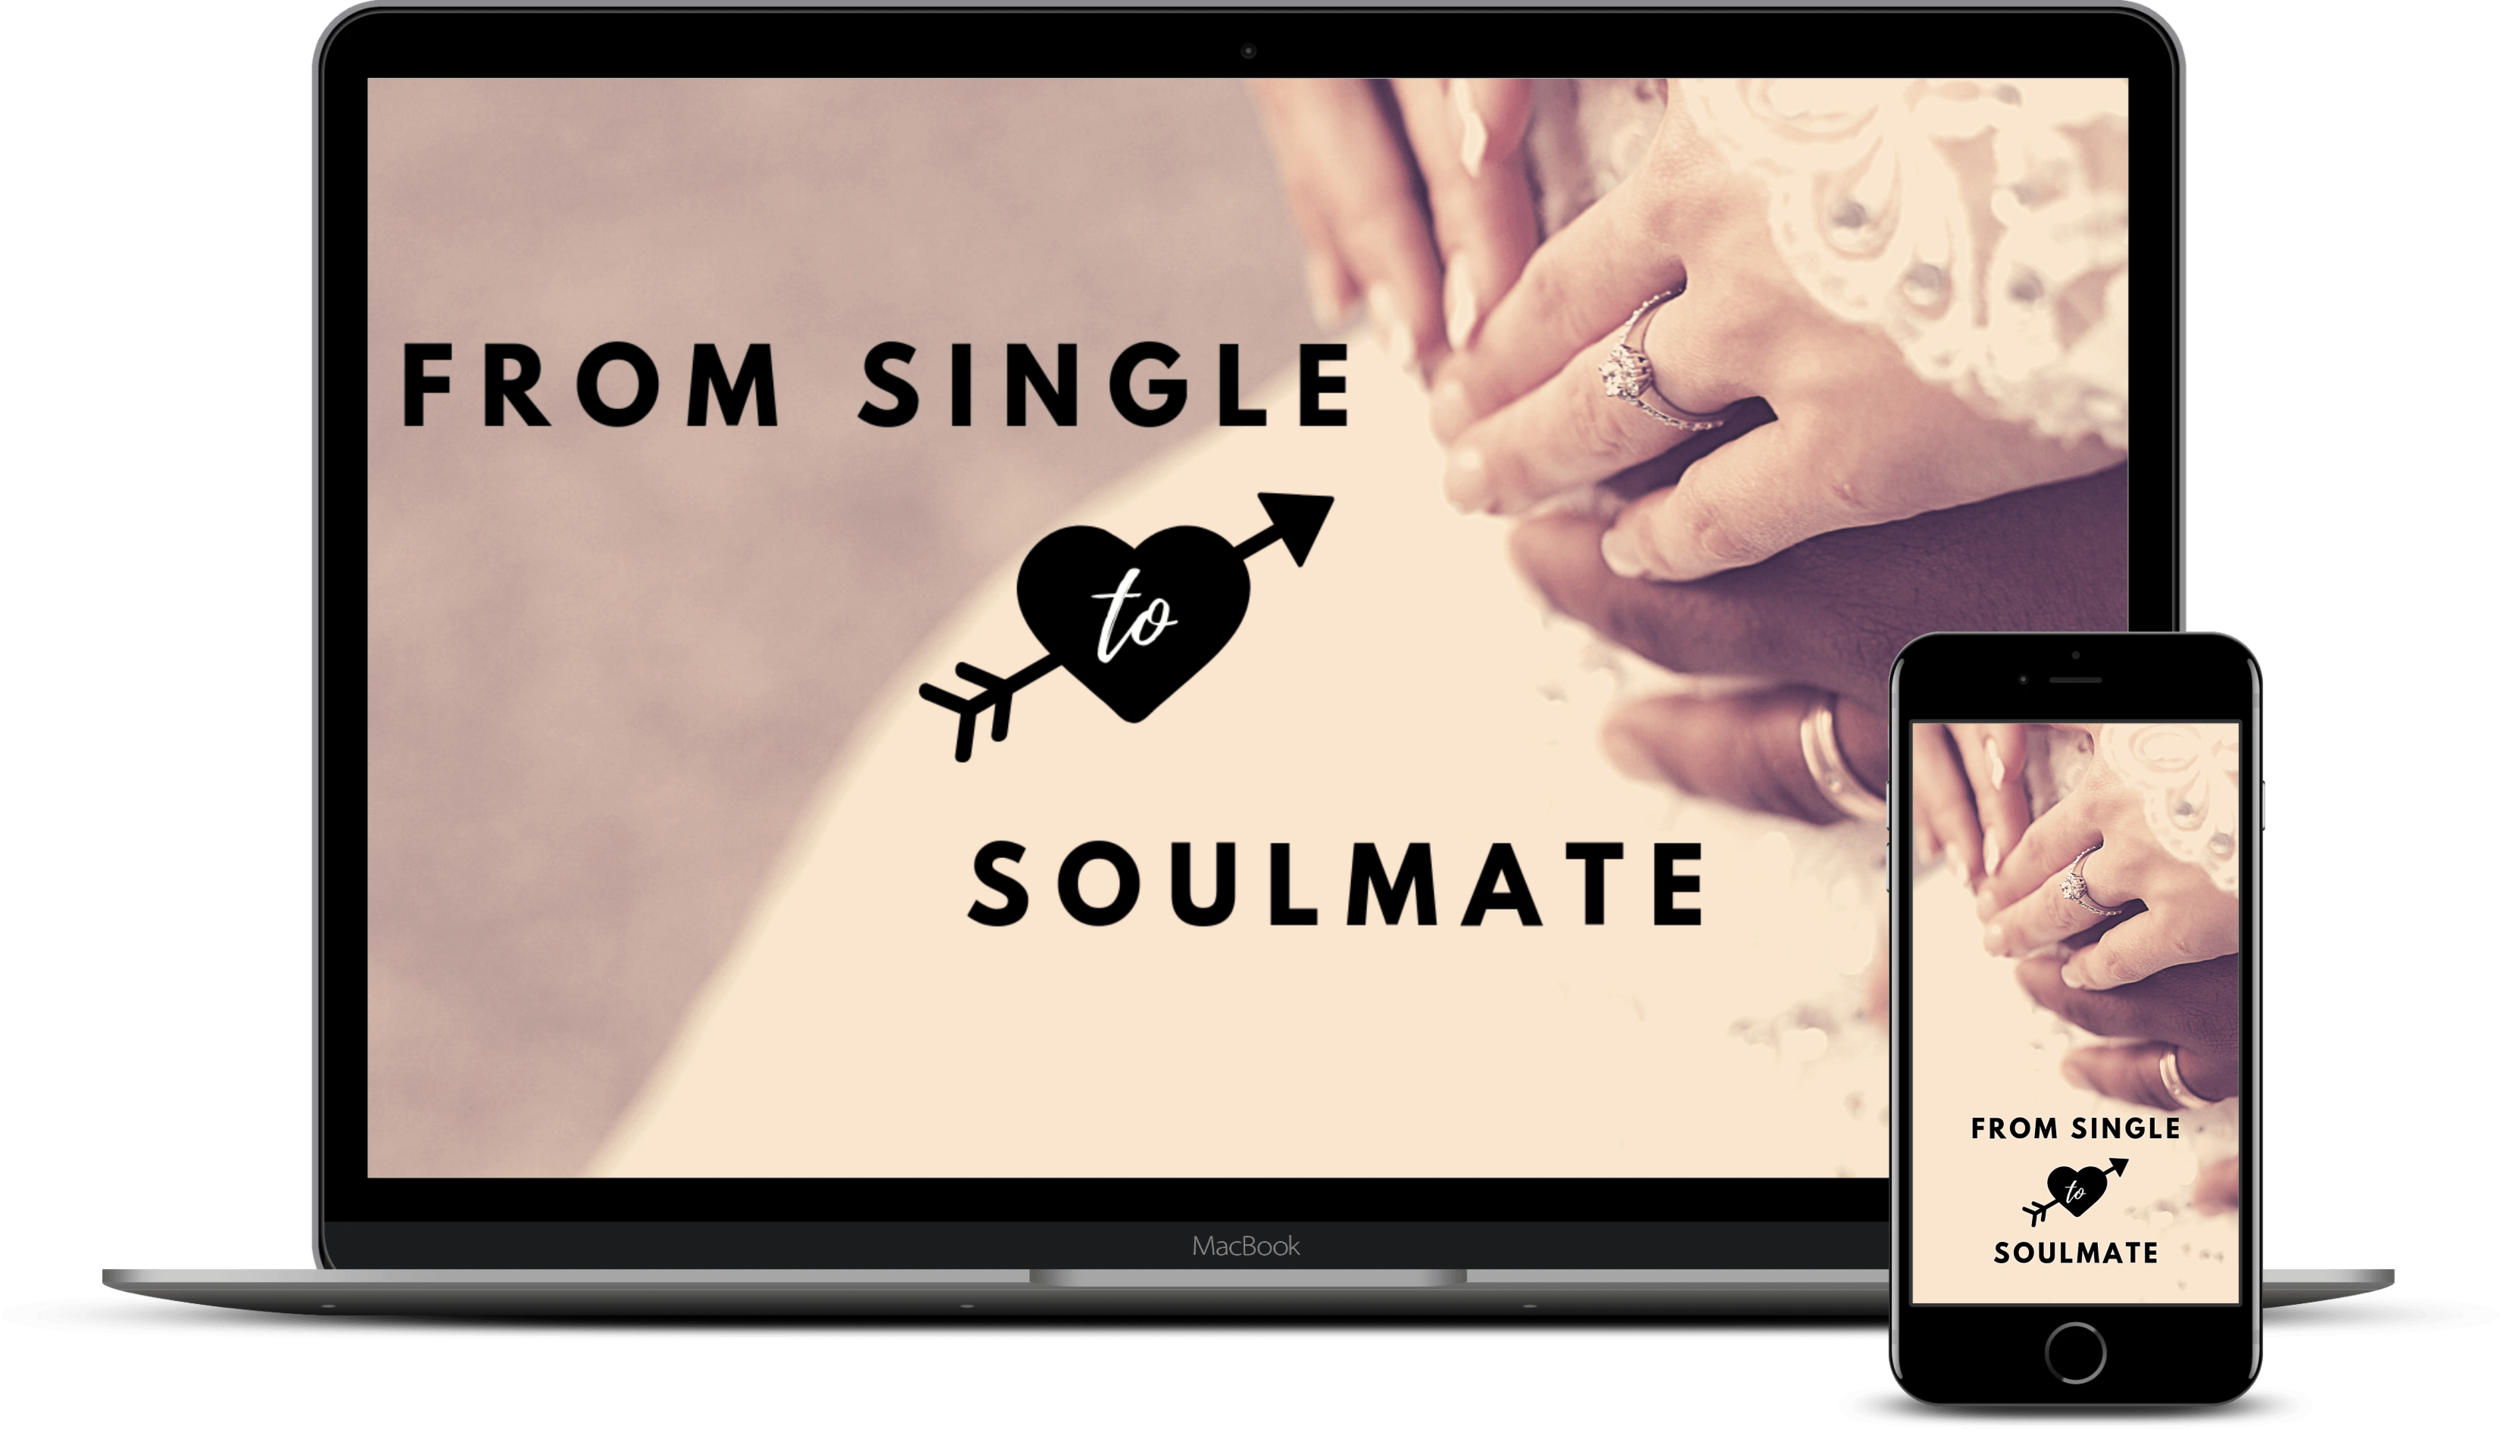 FEELING BROKEN? - Ladies often tell me how they feel broken and defeated by the whole marriage process and need to just work on themselves first before they go back out there and continue searching. If this sounds like you then From Single To Soulmate is the right programme for you. Work through the 5 key stages to raise your self-esteem and put you back in control of your feelings and your search.CLICK HERE TO LEARN MORE